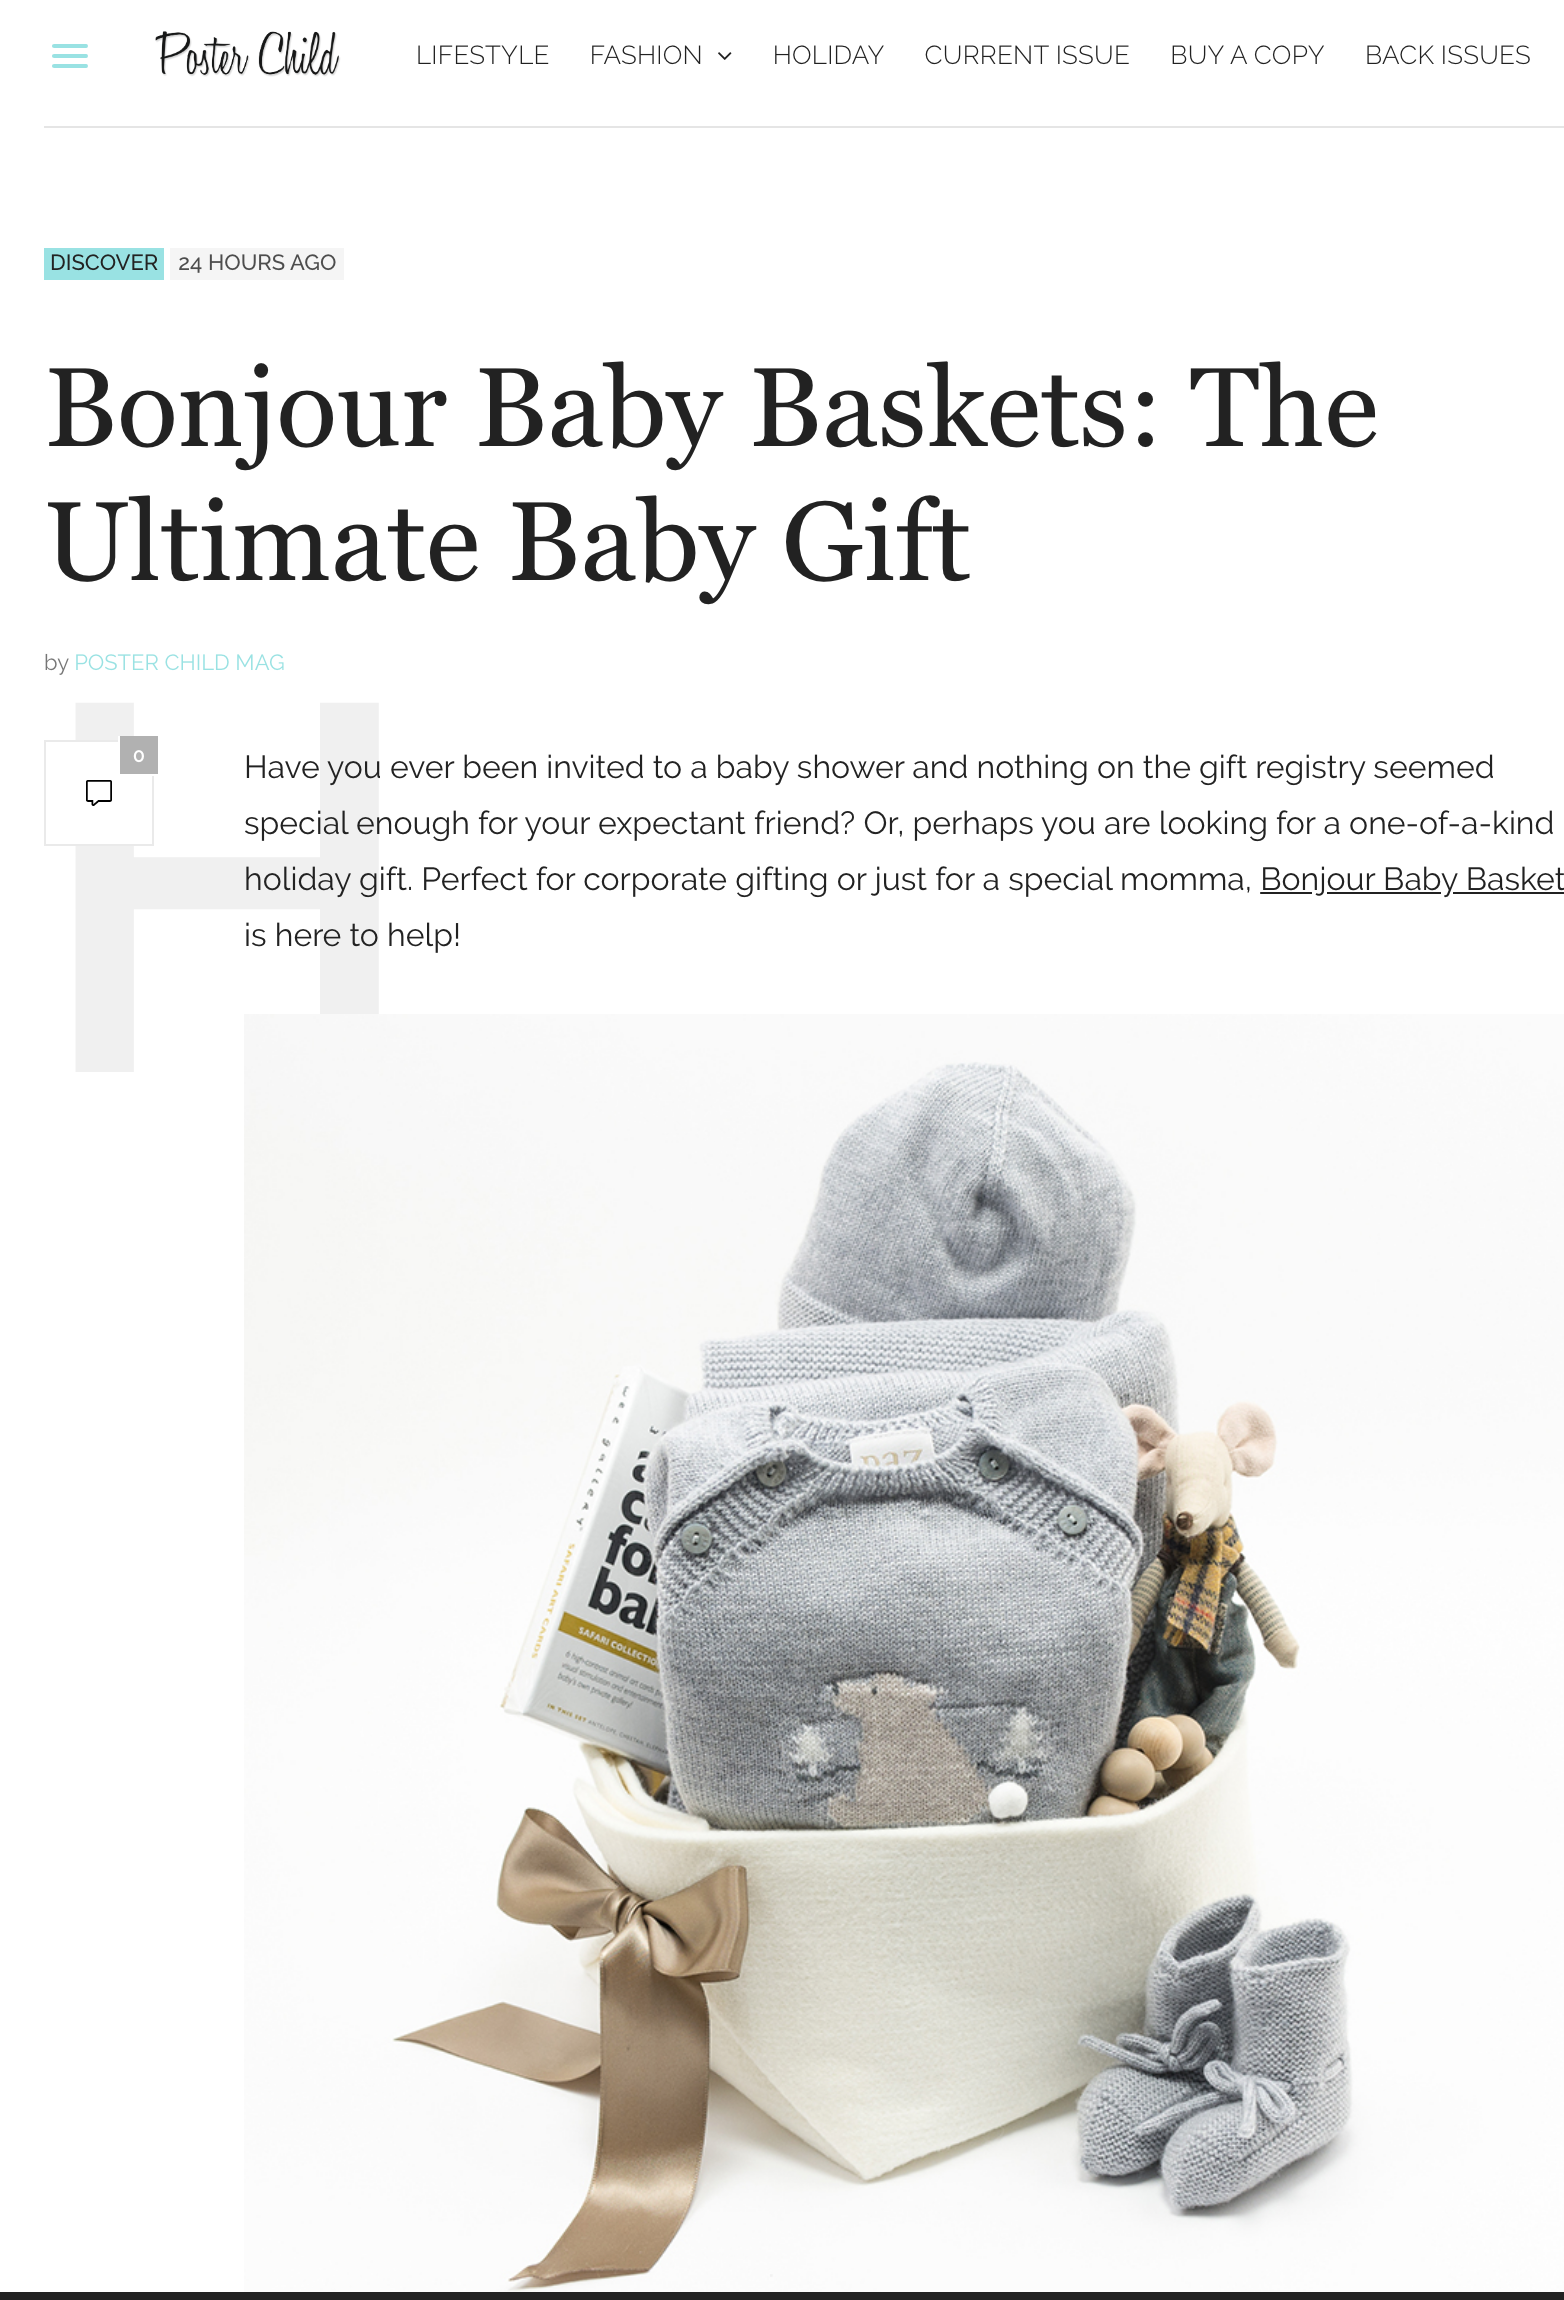 Bonjour Baby Baskets review by Poster Child Magazine